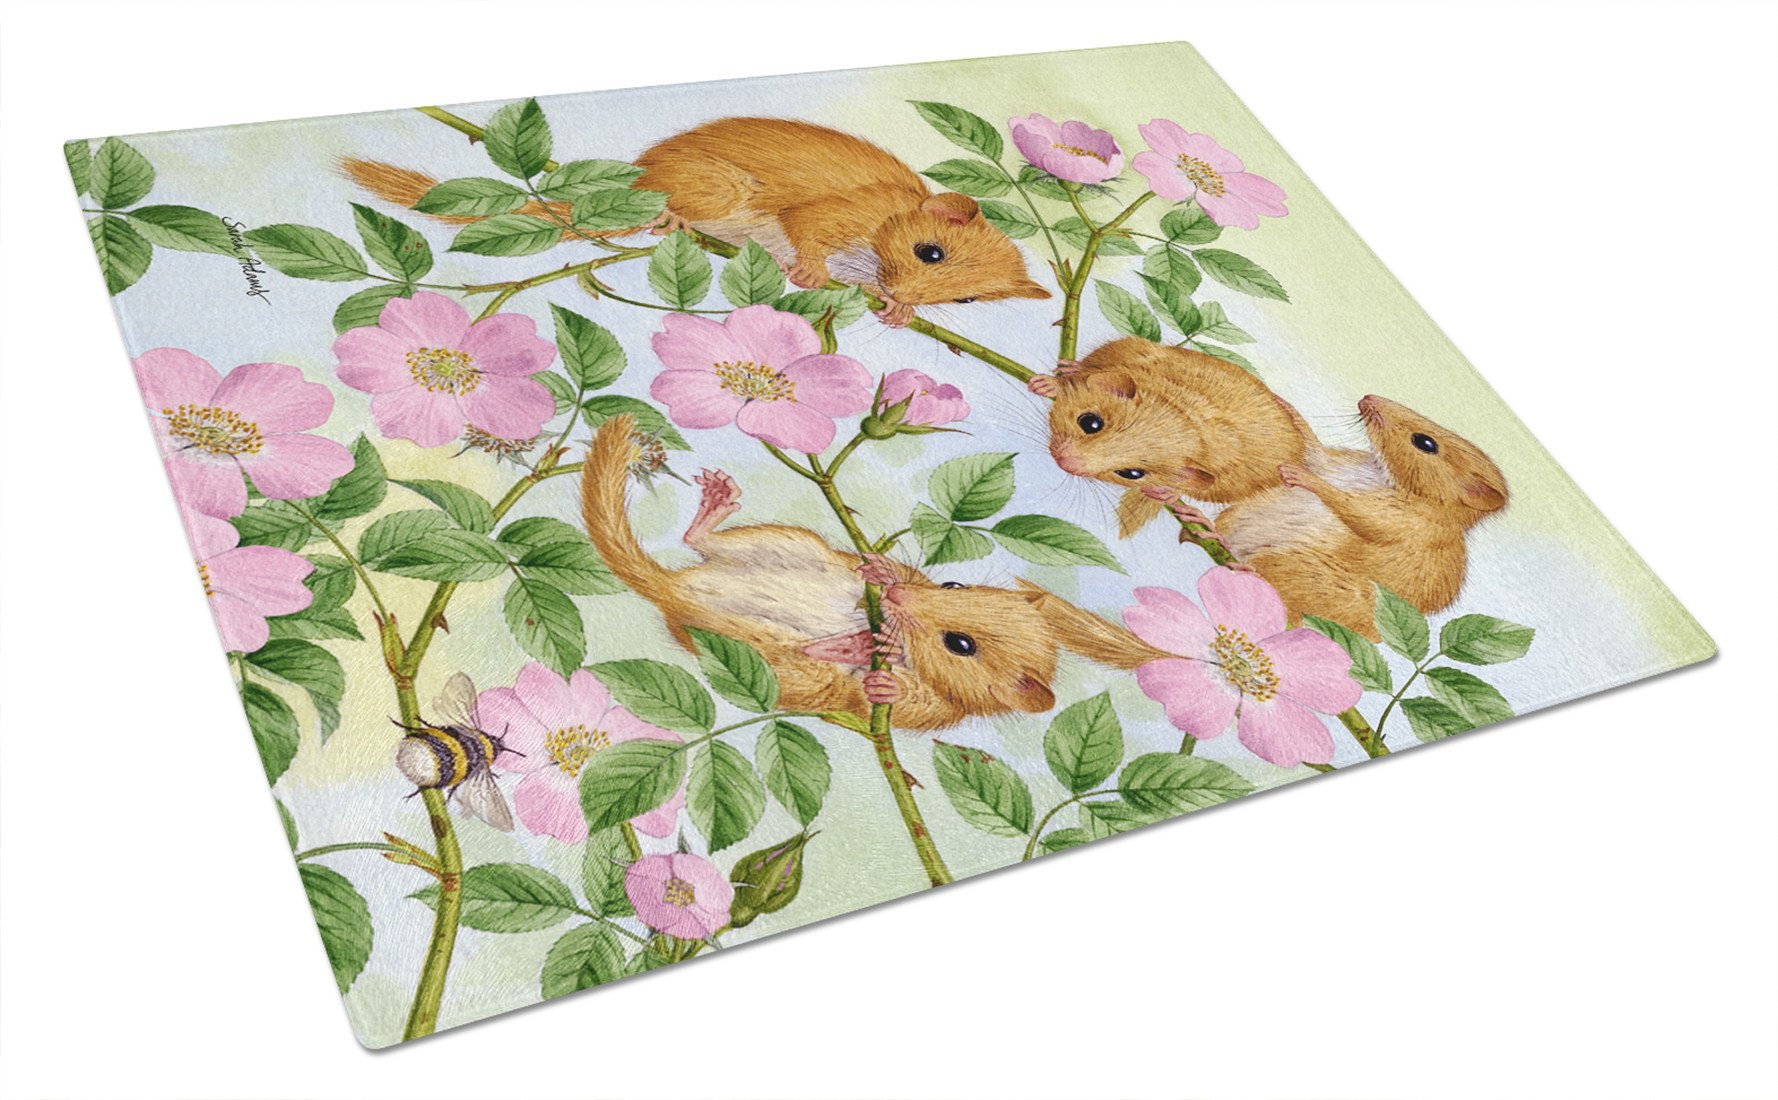 Buy this Dormice Dormouse Glass Cutting Board Large ASA2136LCB